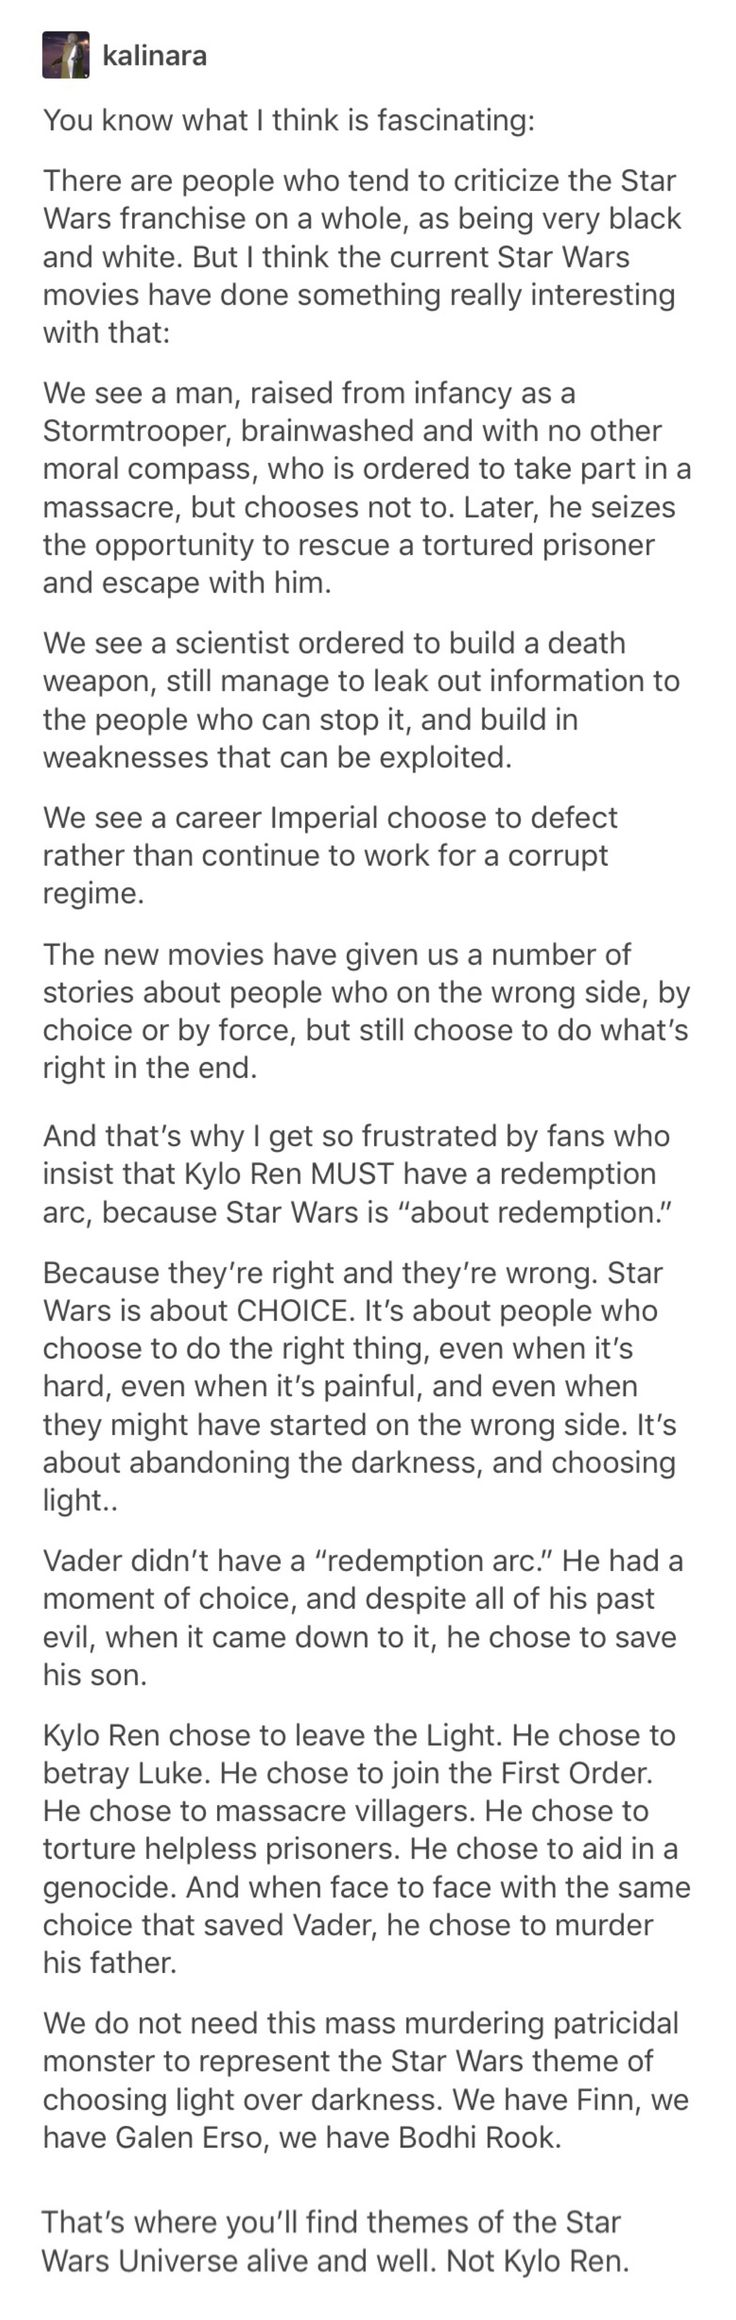 Kyle ren is a little bitch and I don't think he needs a redemption arc, but I'm still soft for reylo